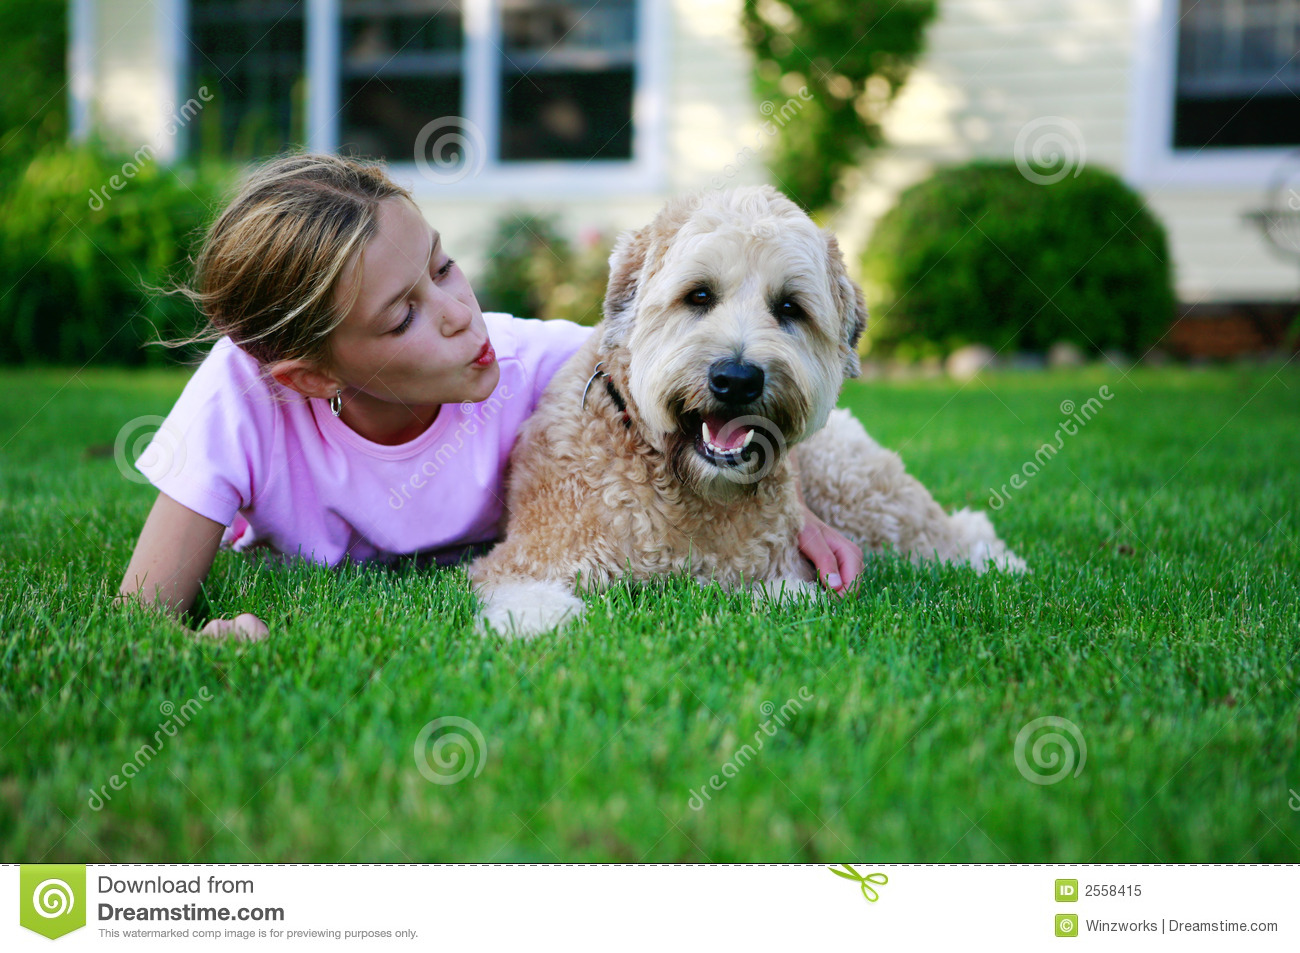 Happy Dog Royalty Free Stock Photo - Image: 2558415 - photo#25